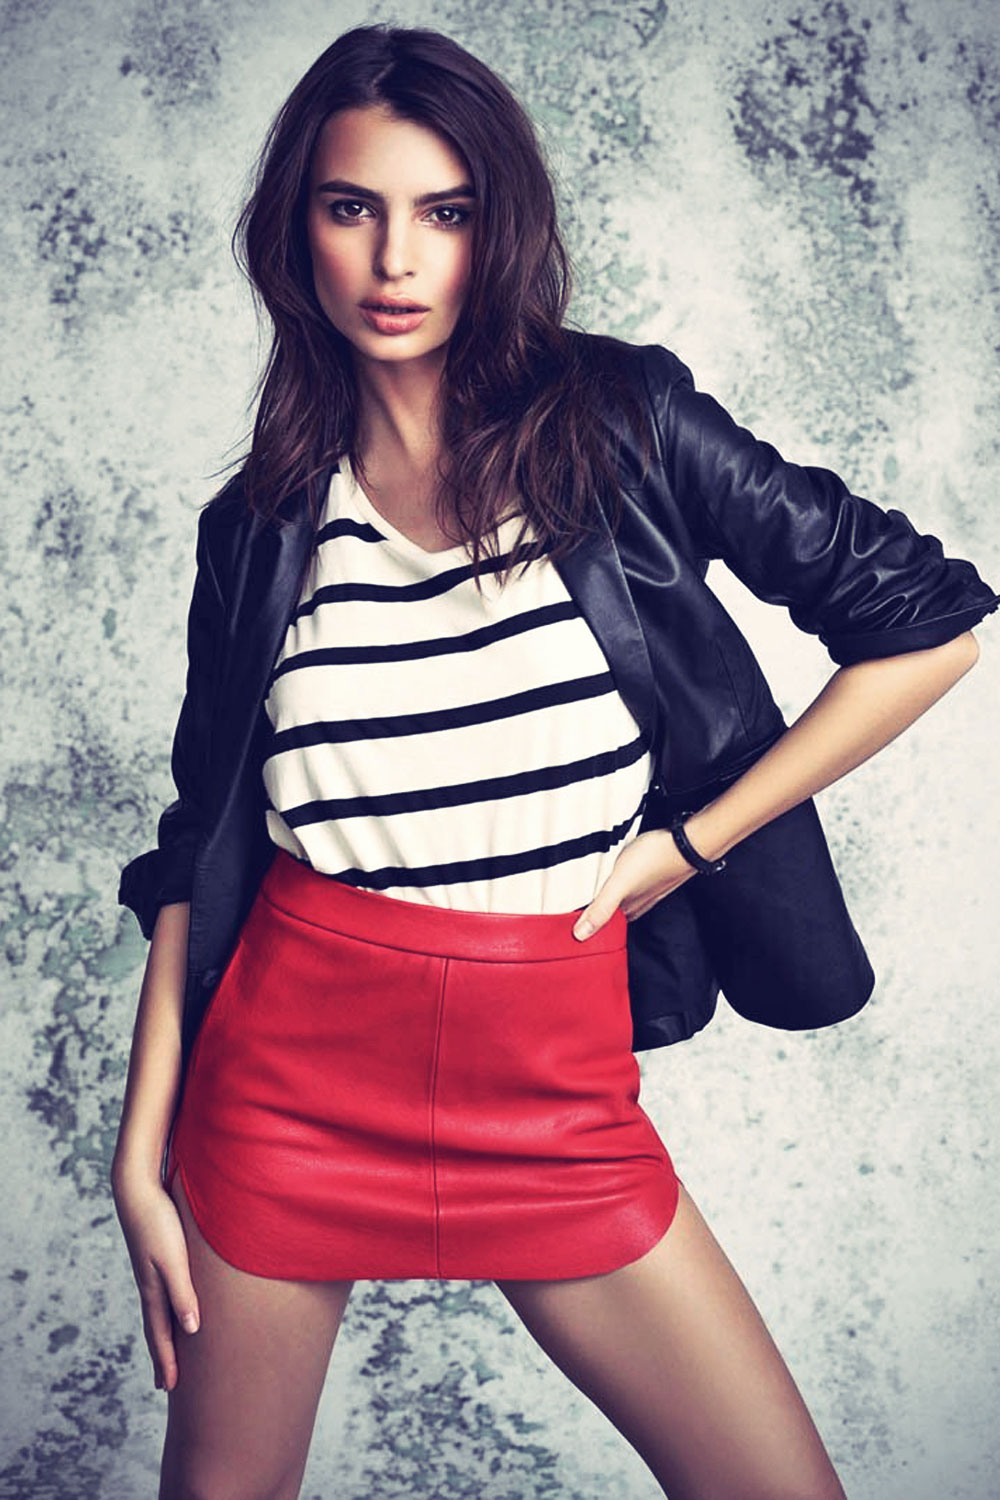 Emily Ratajkowski Campaign Shoot for Revolve Clothing 2014